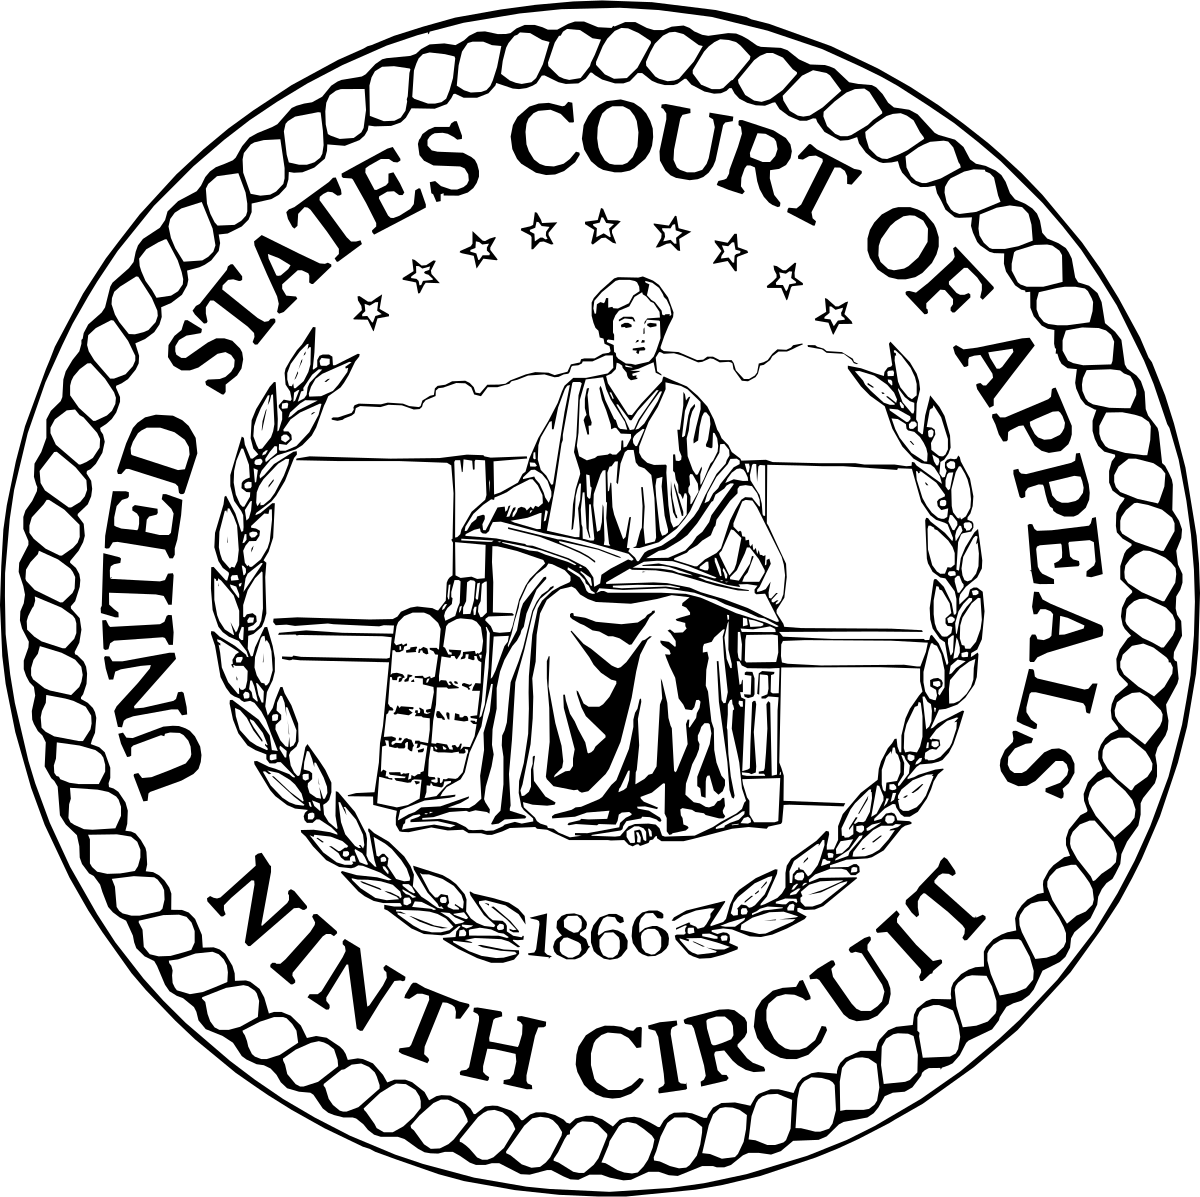 United States Court of Appeals for the Ninth Circuit.